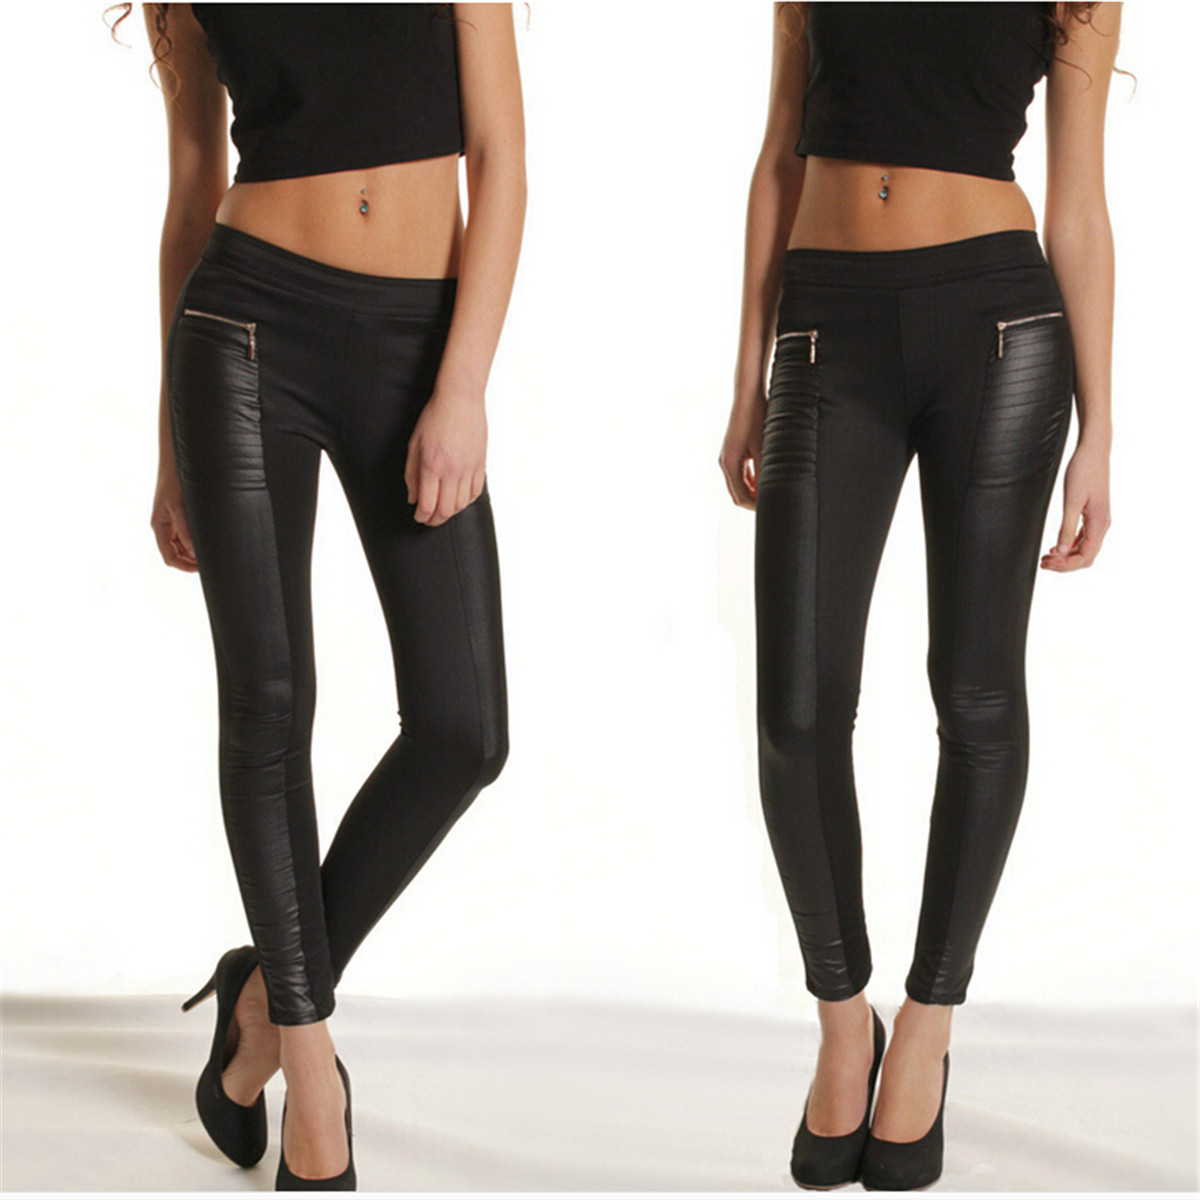 Fashion Womens Leather Panel Leggings Jeggings Zip Pocket Stretch Trousers Black